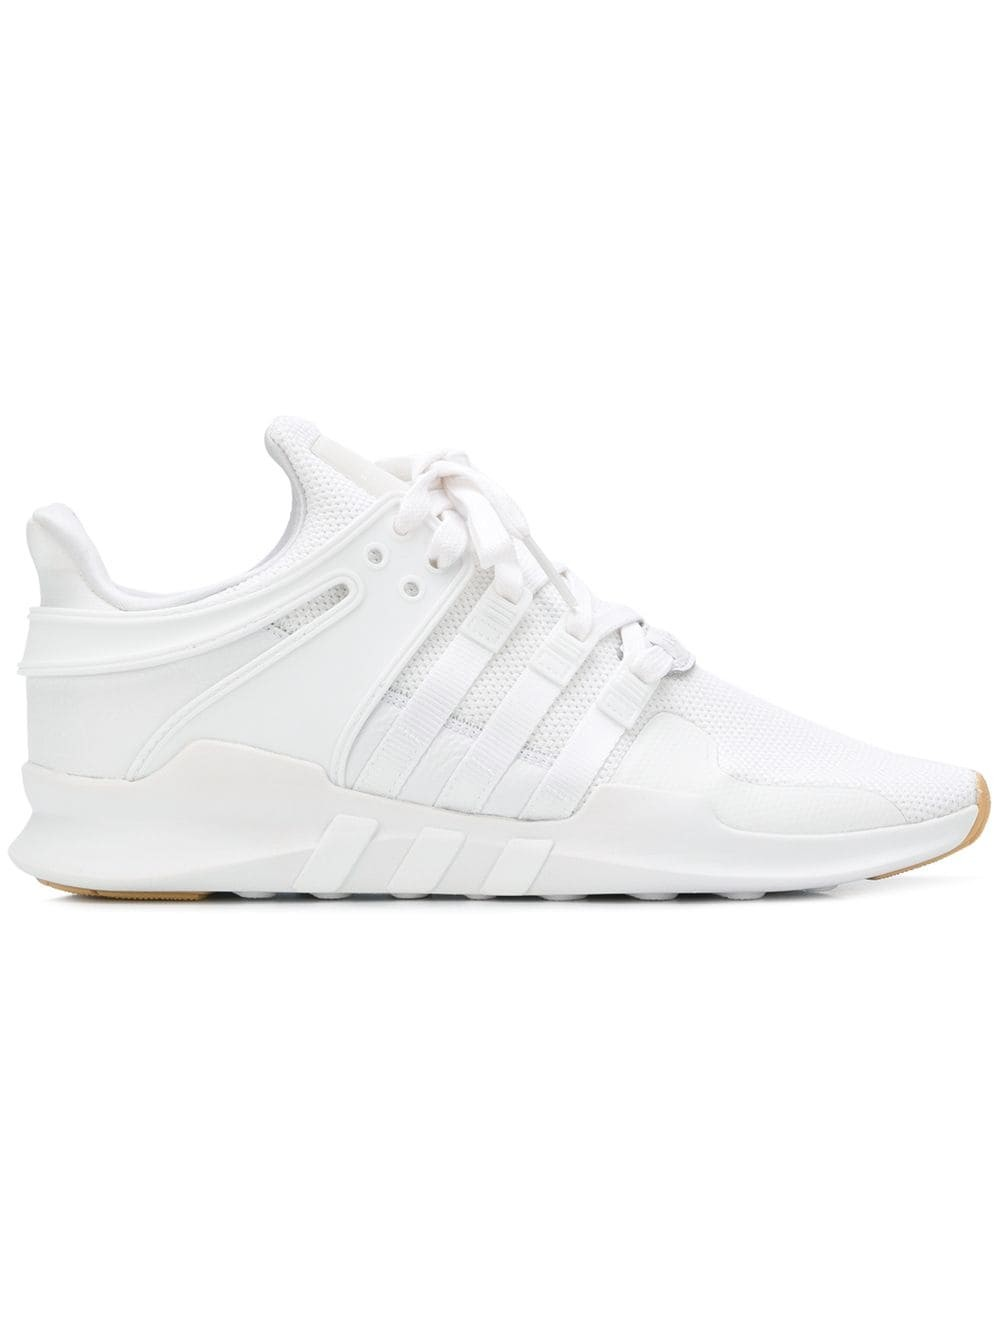 Adidas EQT Support ADV Homme B37344 Blanche Gum Knit